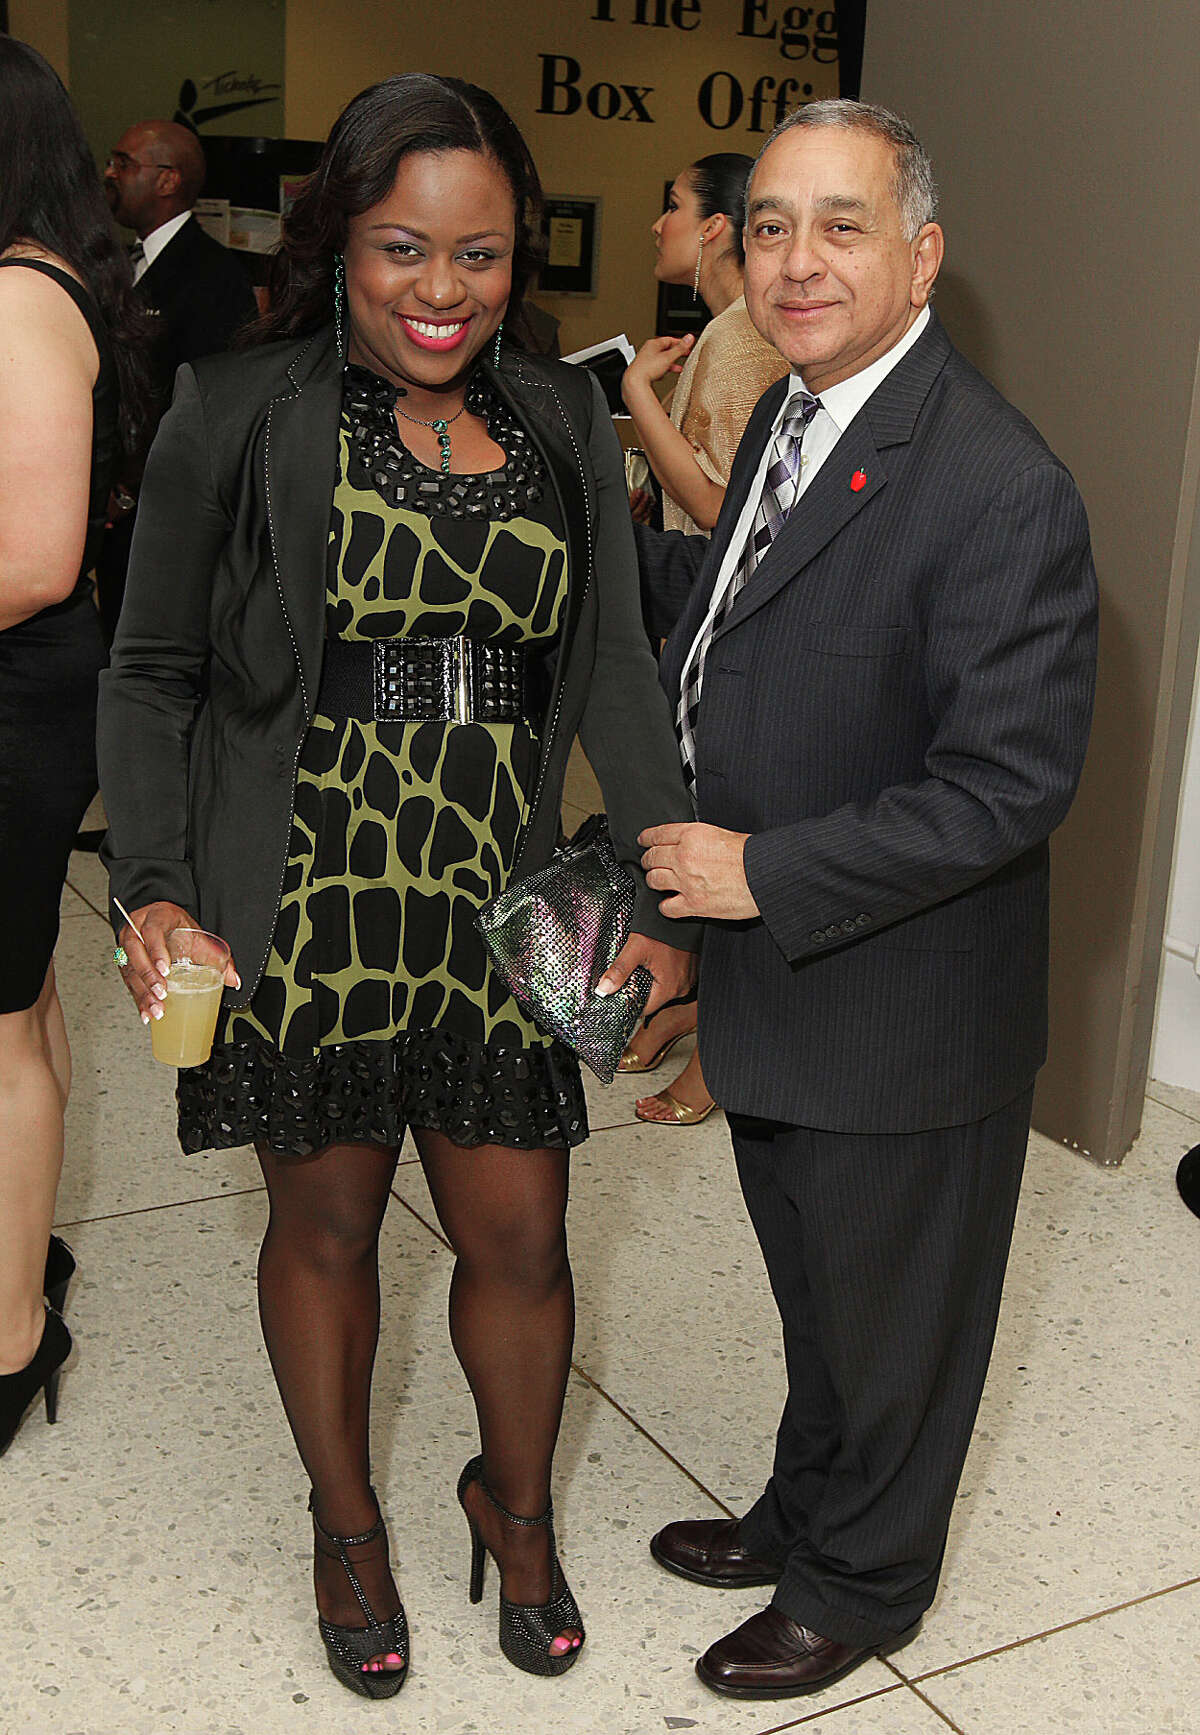 Were you Seen at the New York State Black & Puerto Rican Caucus Gala at the Empire State Plaza Convention Center in Albany on Sunday, Feb. 17, 2013?